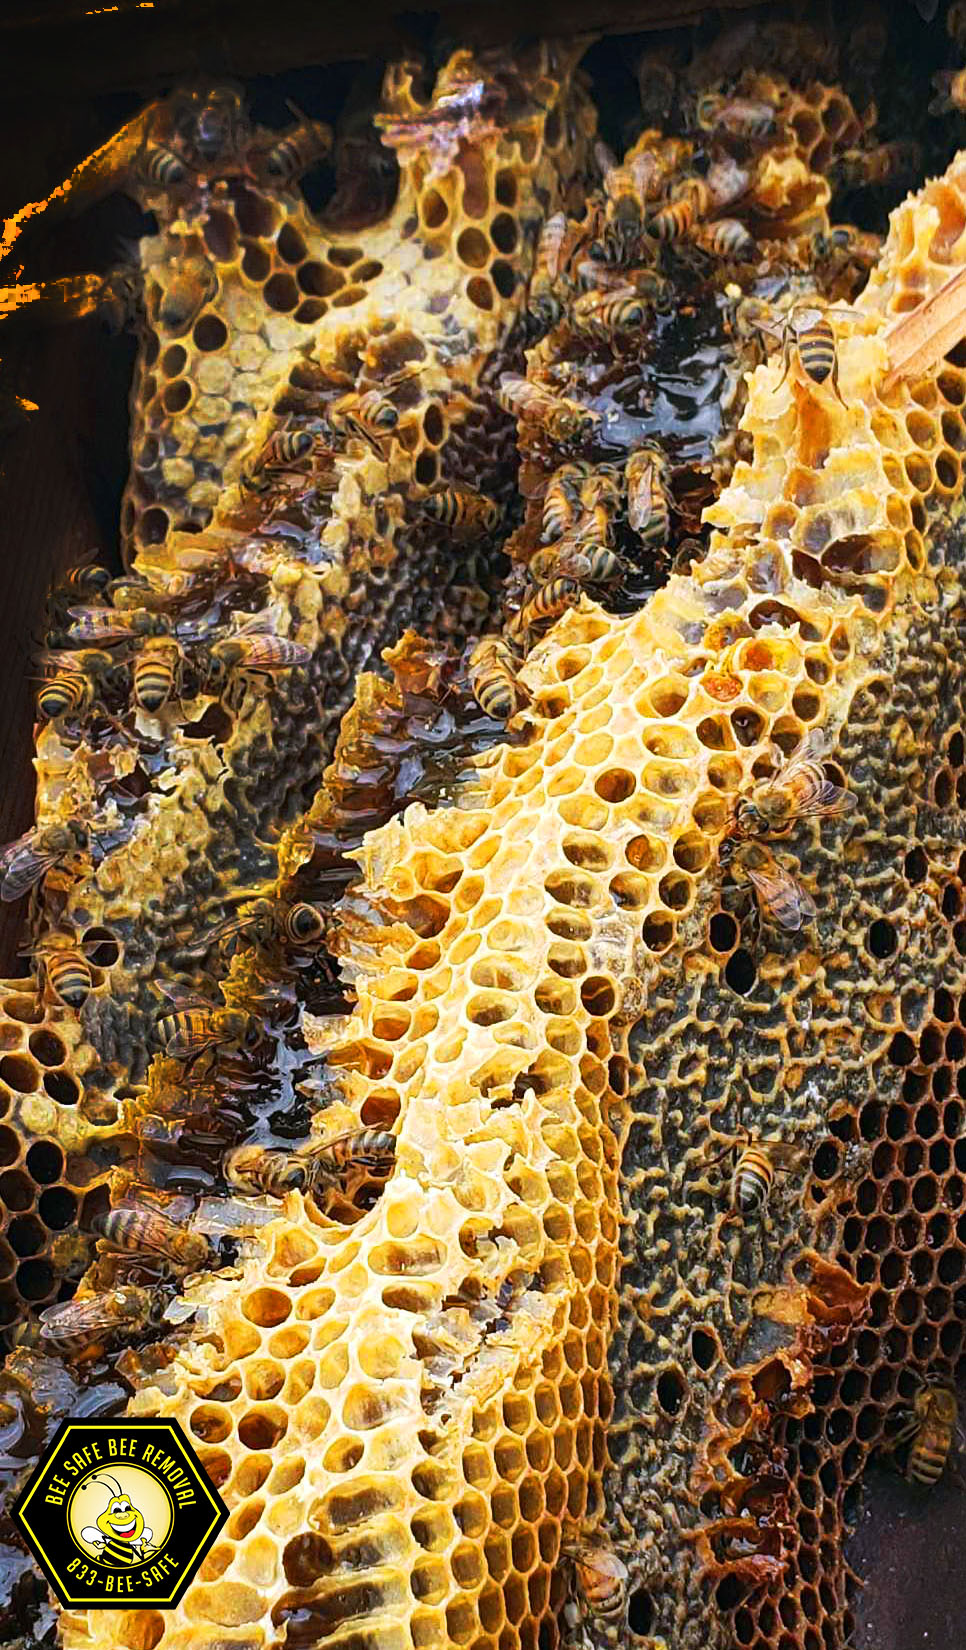 Dallas Texas honeycomb closeup